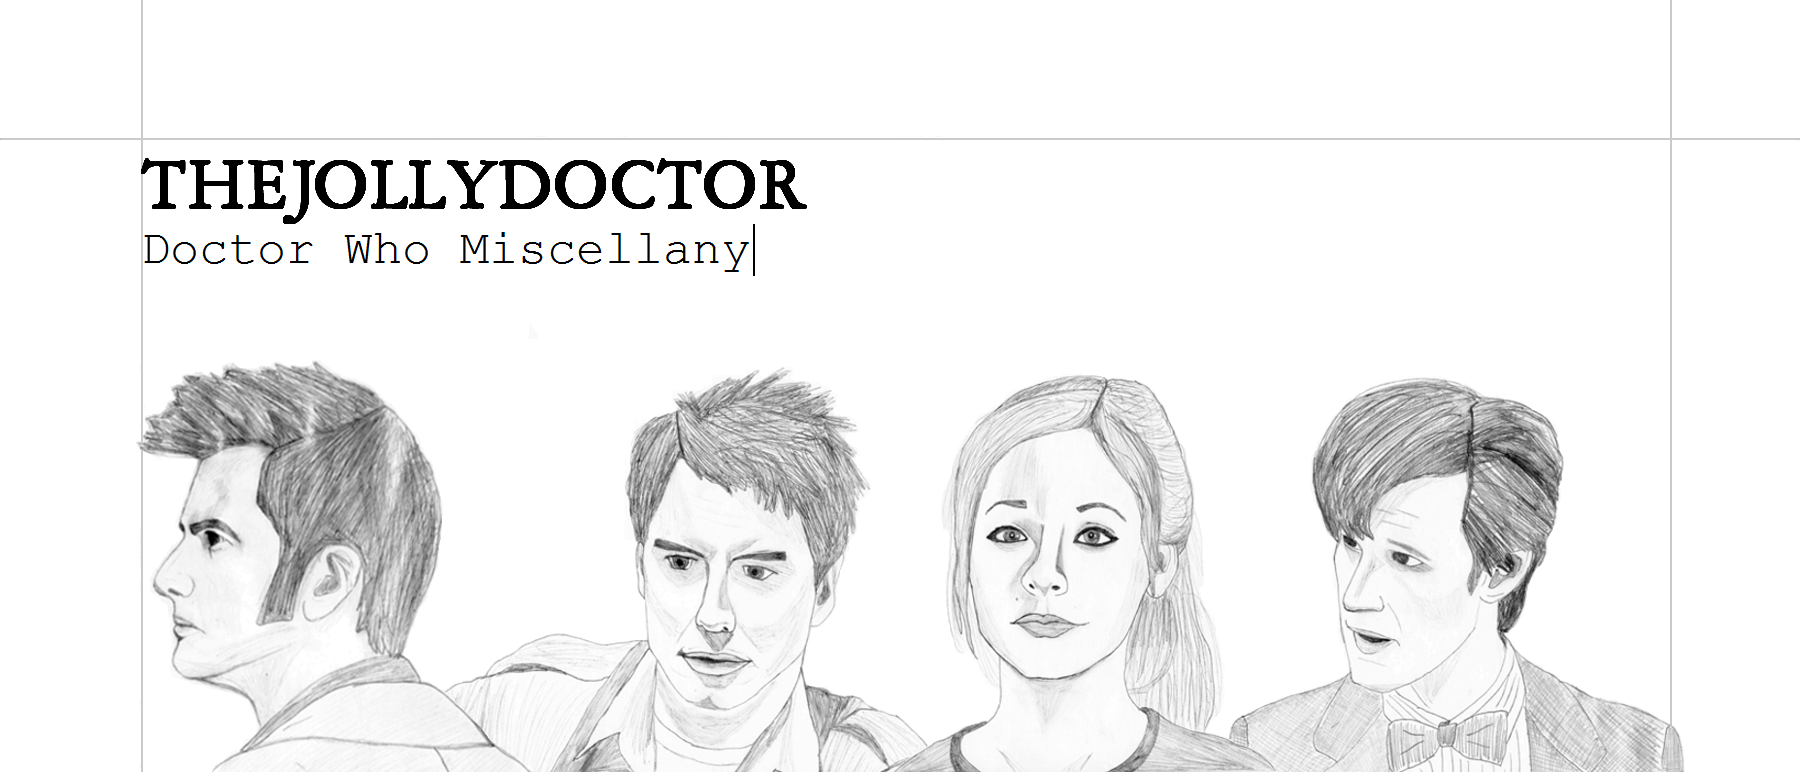 Doctor Who Miscellany